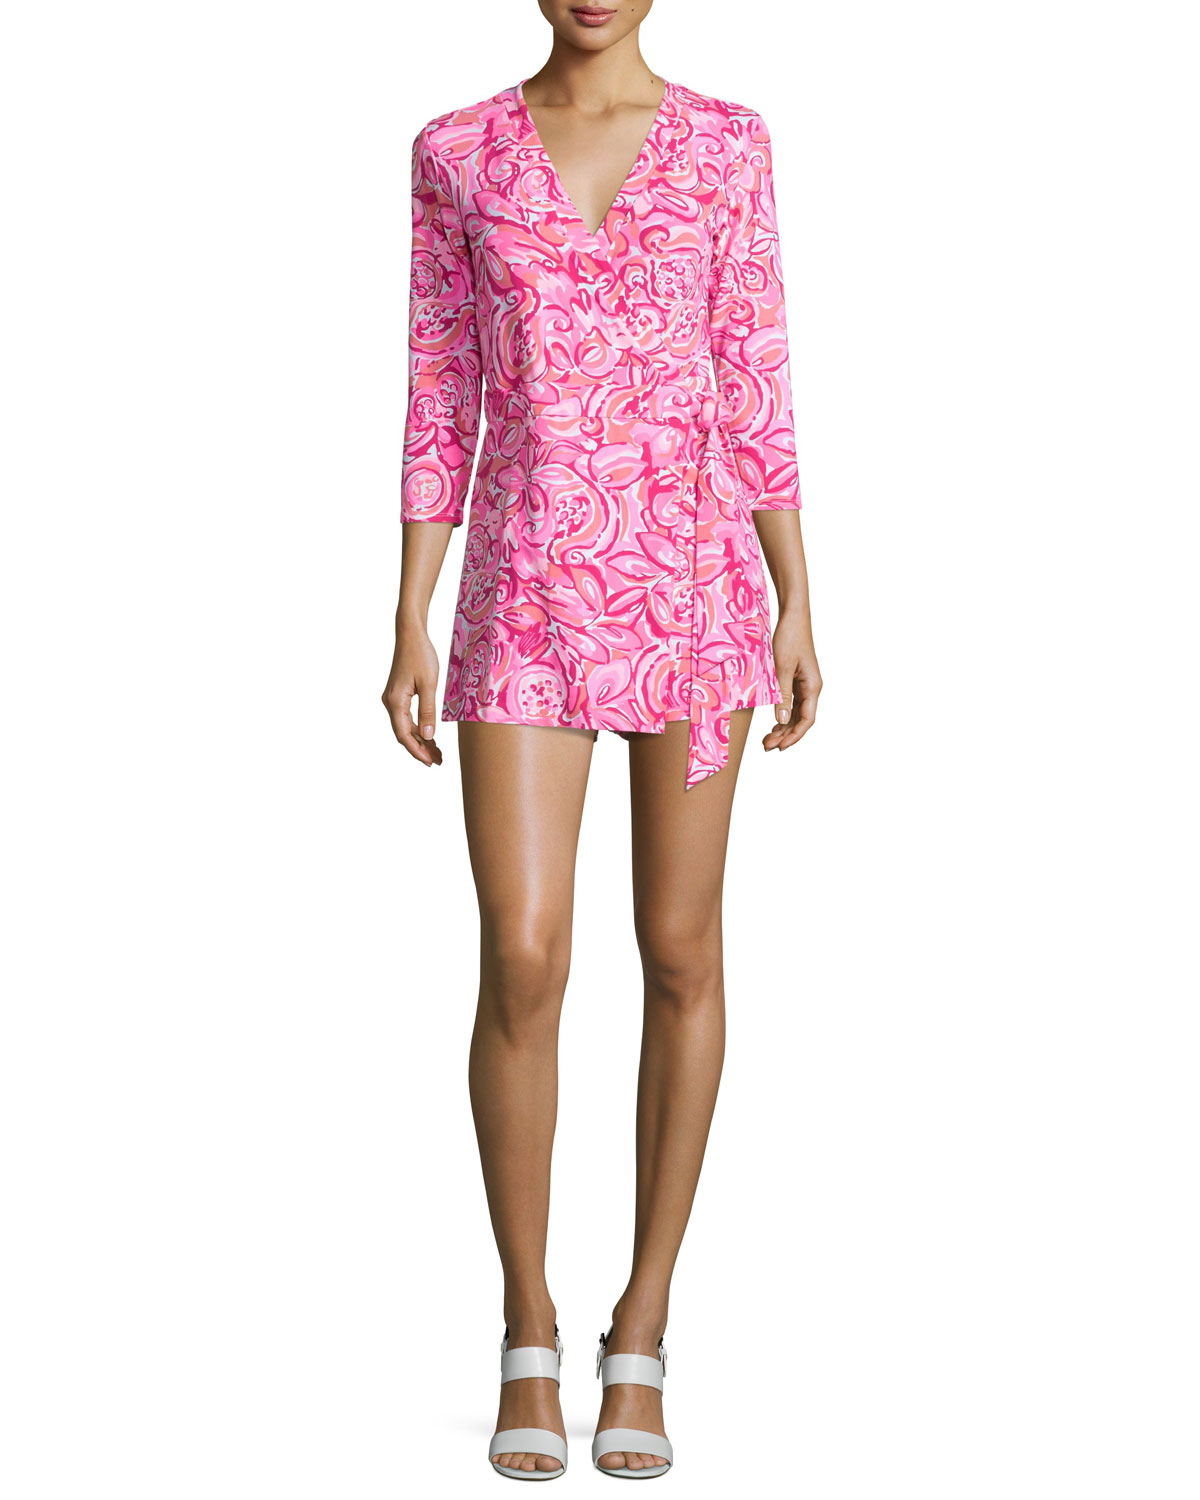 32596f462d3 Lilly Pulitzer Karlie 3 4-Sleeve Wrap Romper